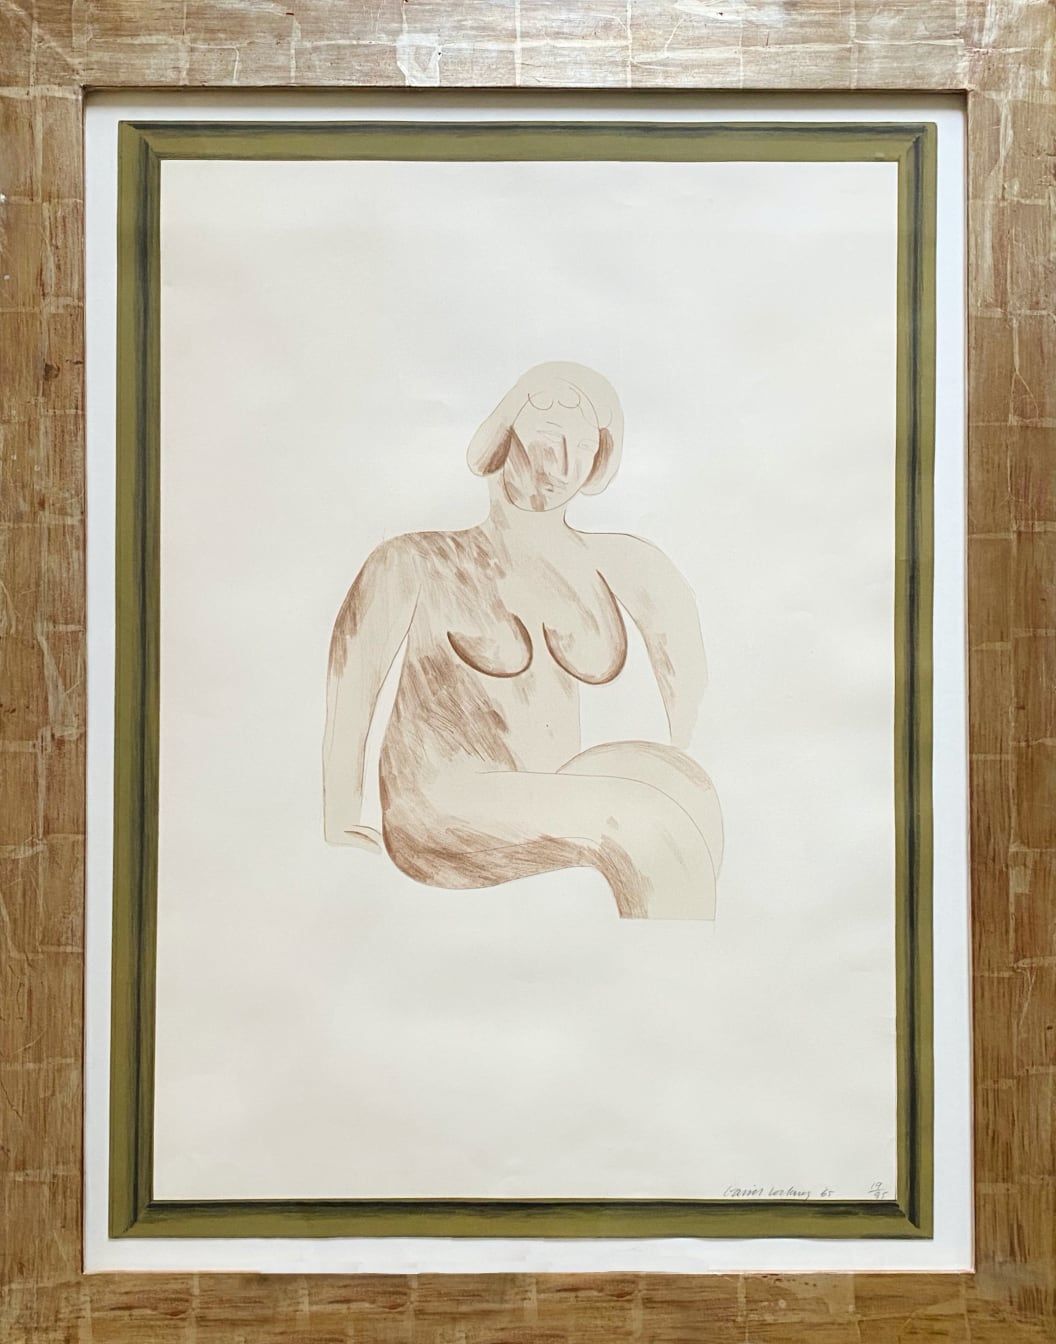 David Hockney - Picture of a Simple Framed Traditional Nude Drawing